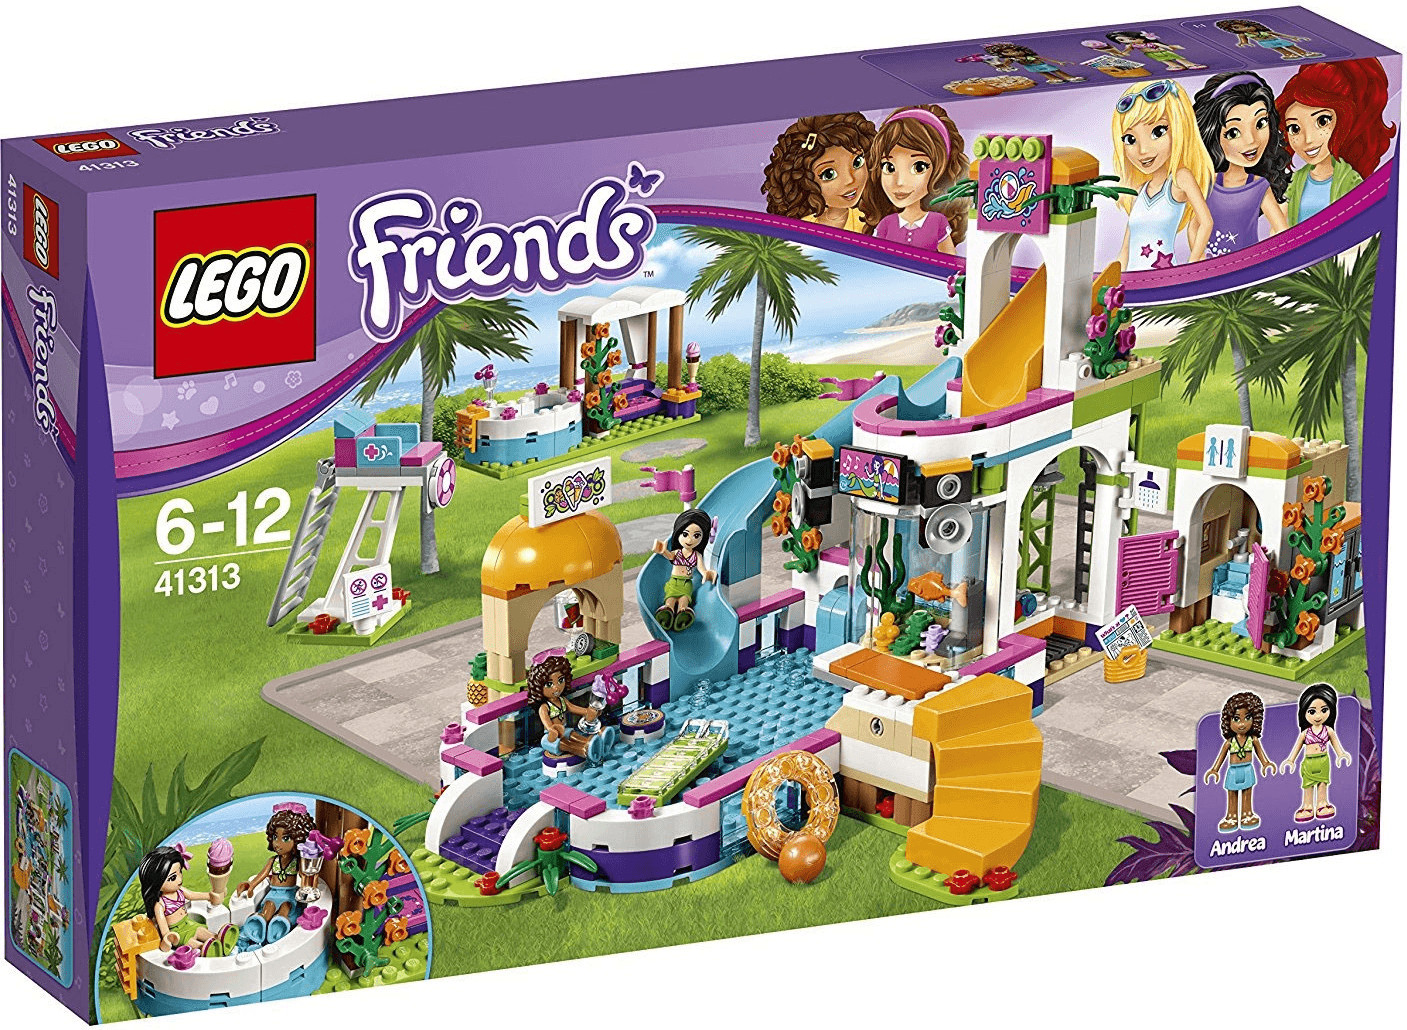 LEGO Friends - Heartlake Freibad (41313)